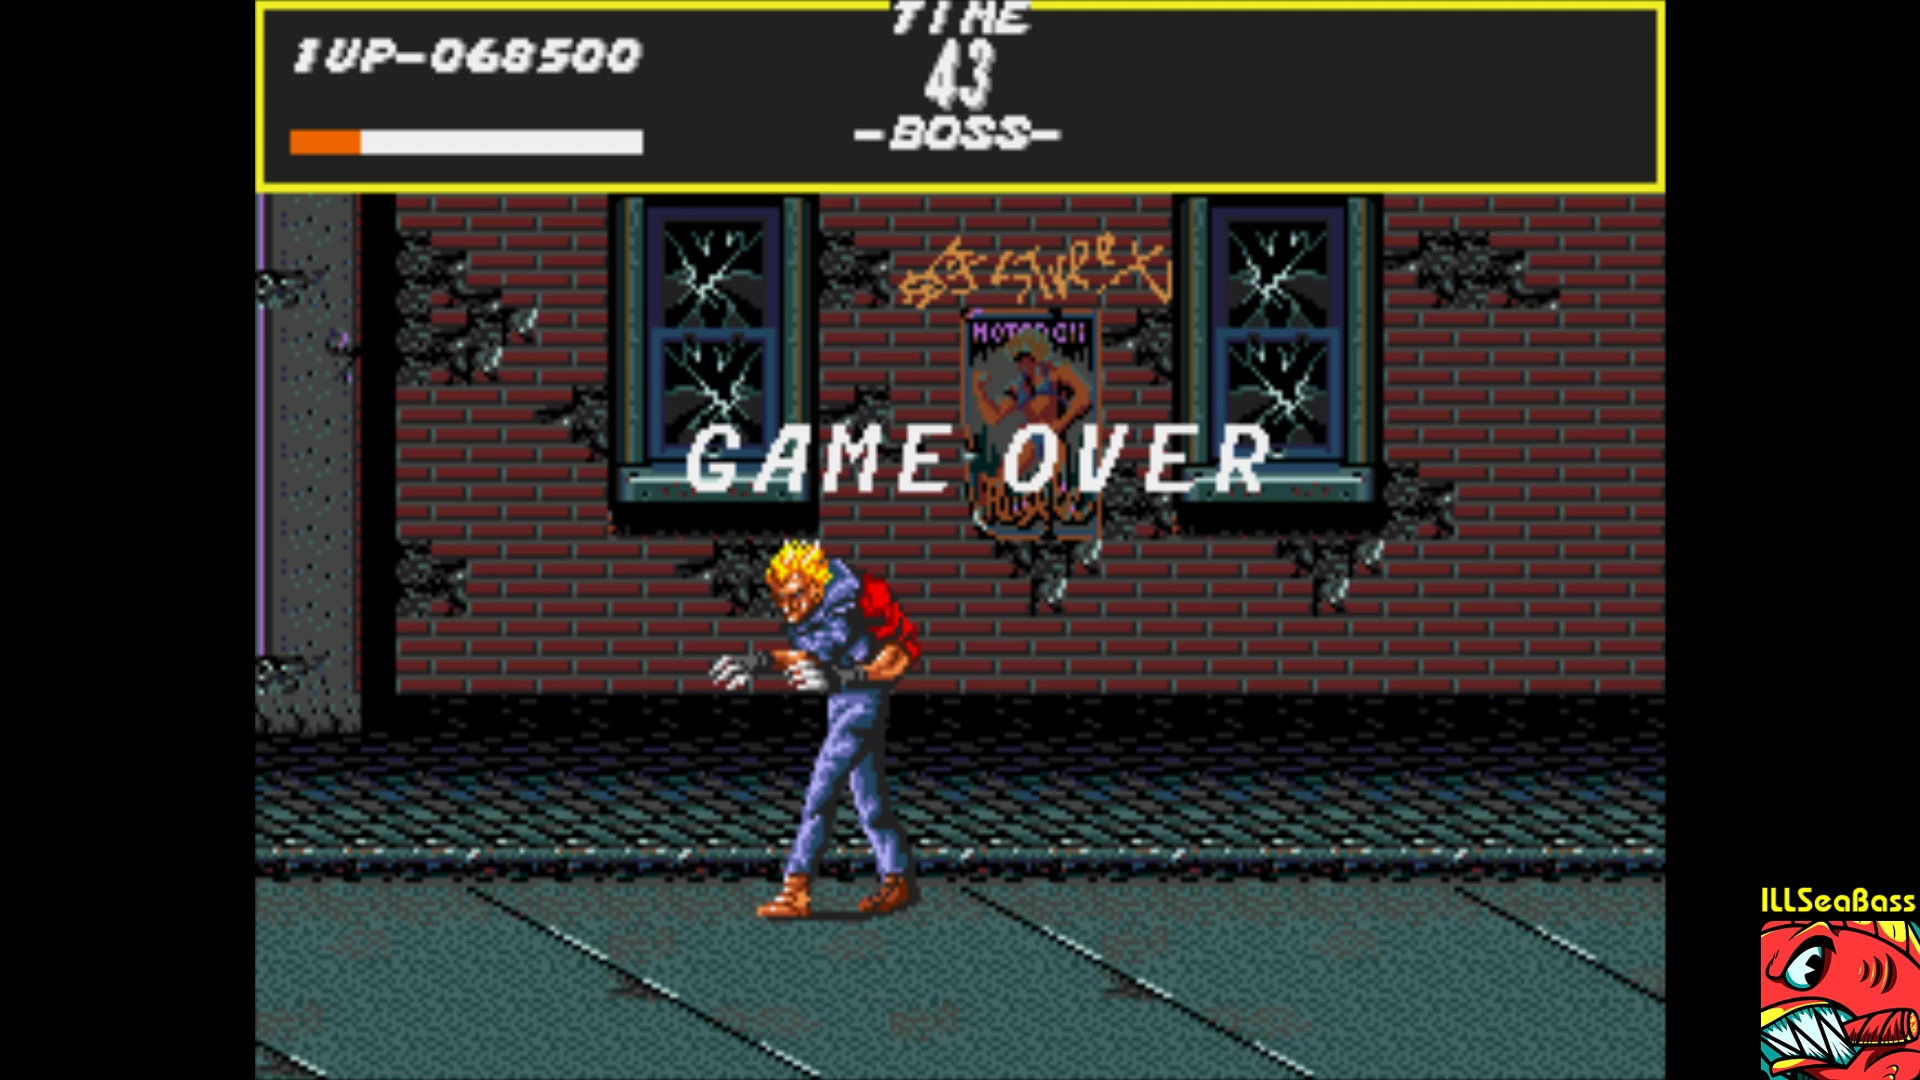 ILLSeaBass: Sega Classics Arcade Collection [Sega CD]: Streets of Rage [Normal] (Sega Genesis / MegaDrive Emulated) 68,500 points on 2018-01-21 01:40:56